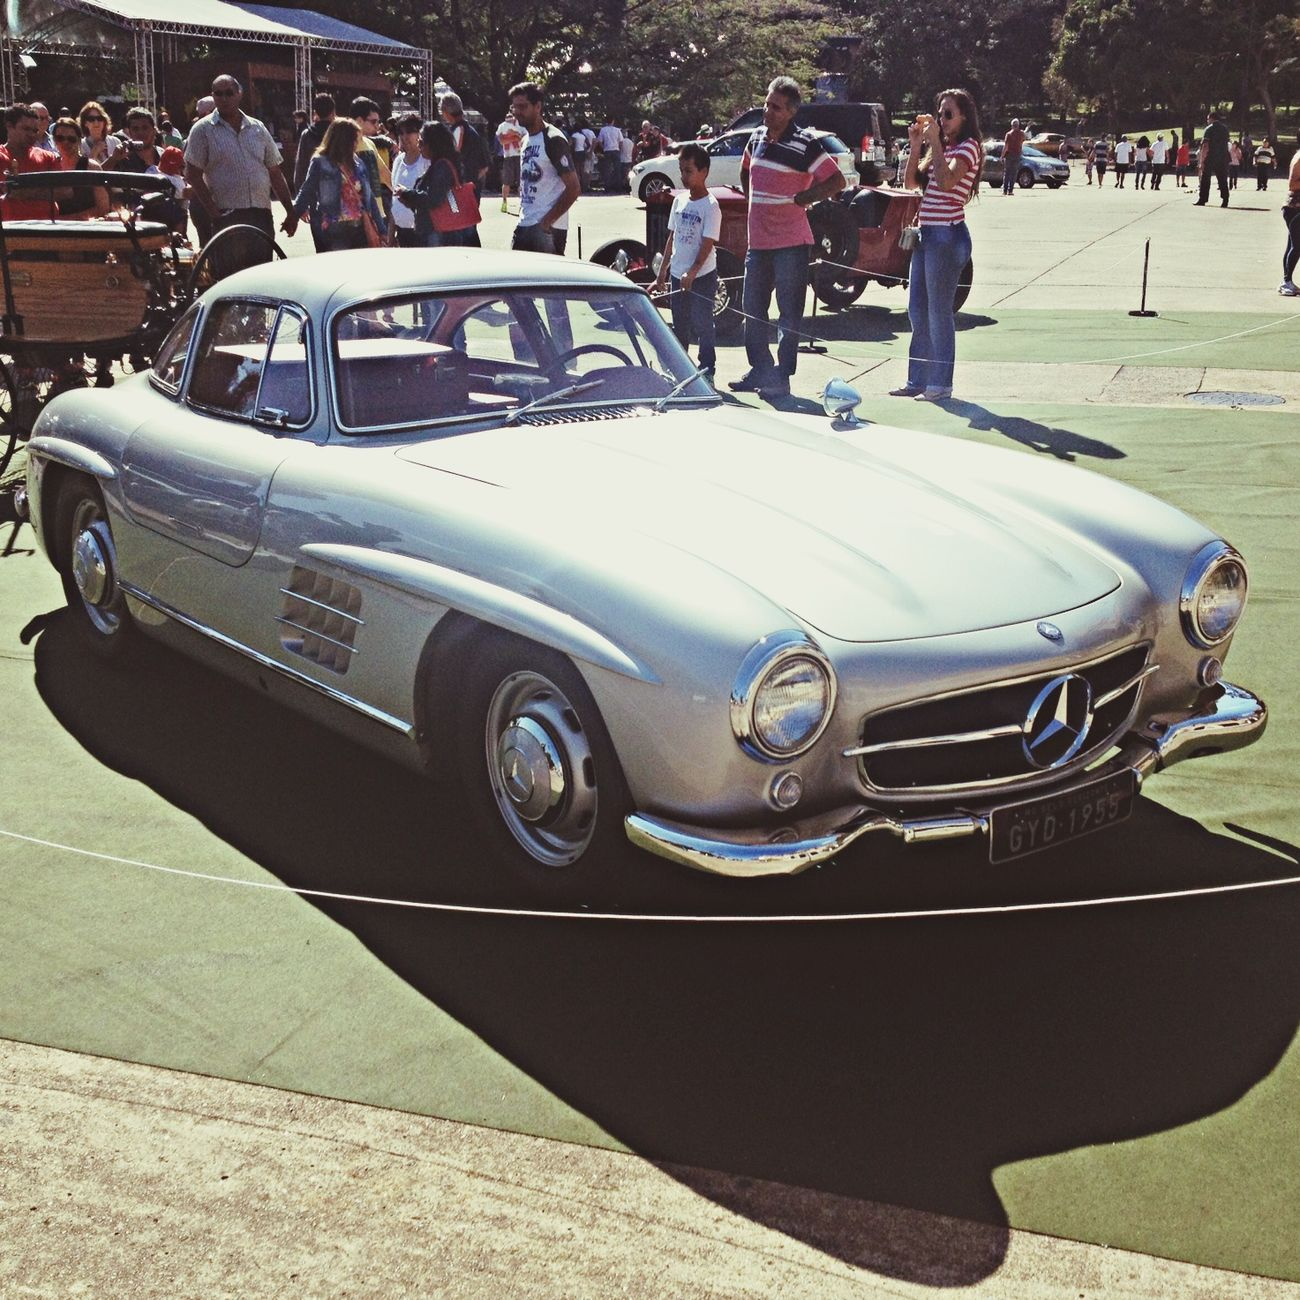 Eyeem Old Time Cars Official Photos Club 🚘🚕🚗🚕🚘 Classic Car Vintage Taking Photos 1955 Mercedes 300SL Gullwing